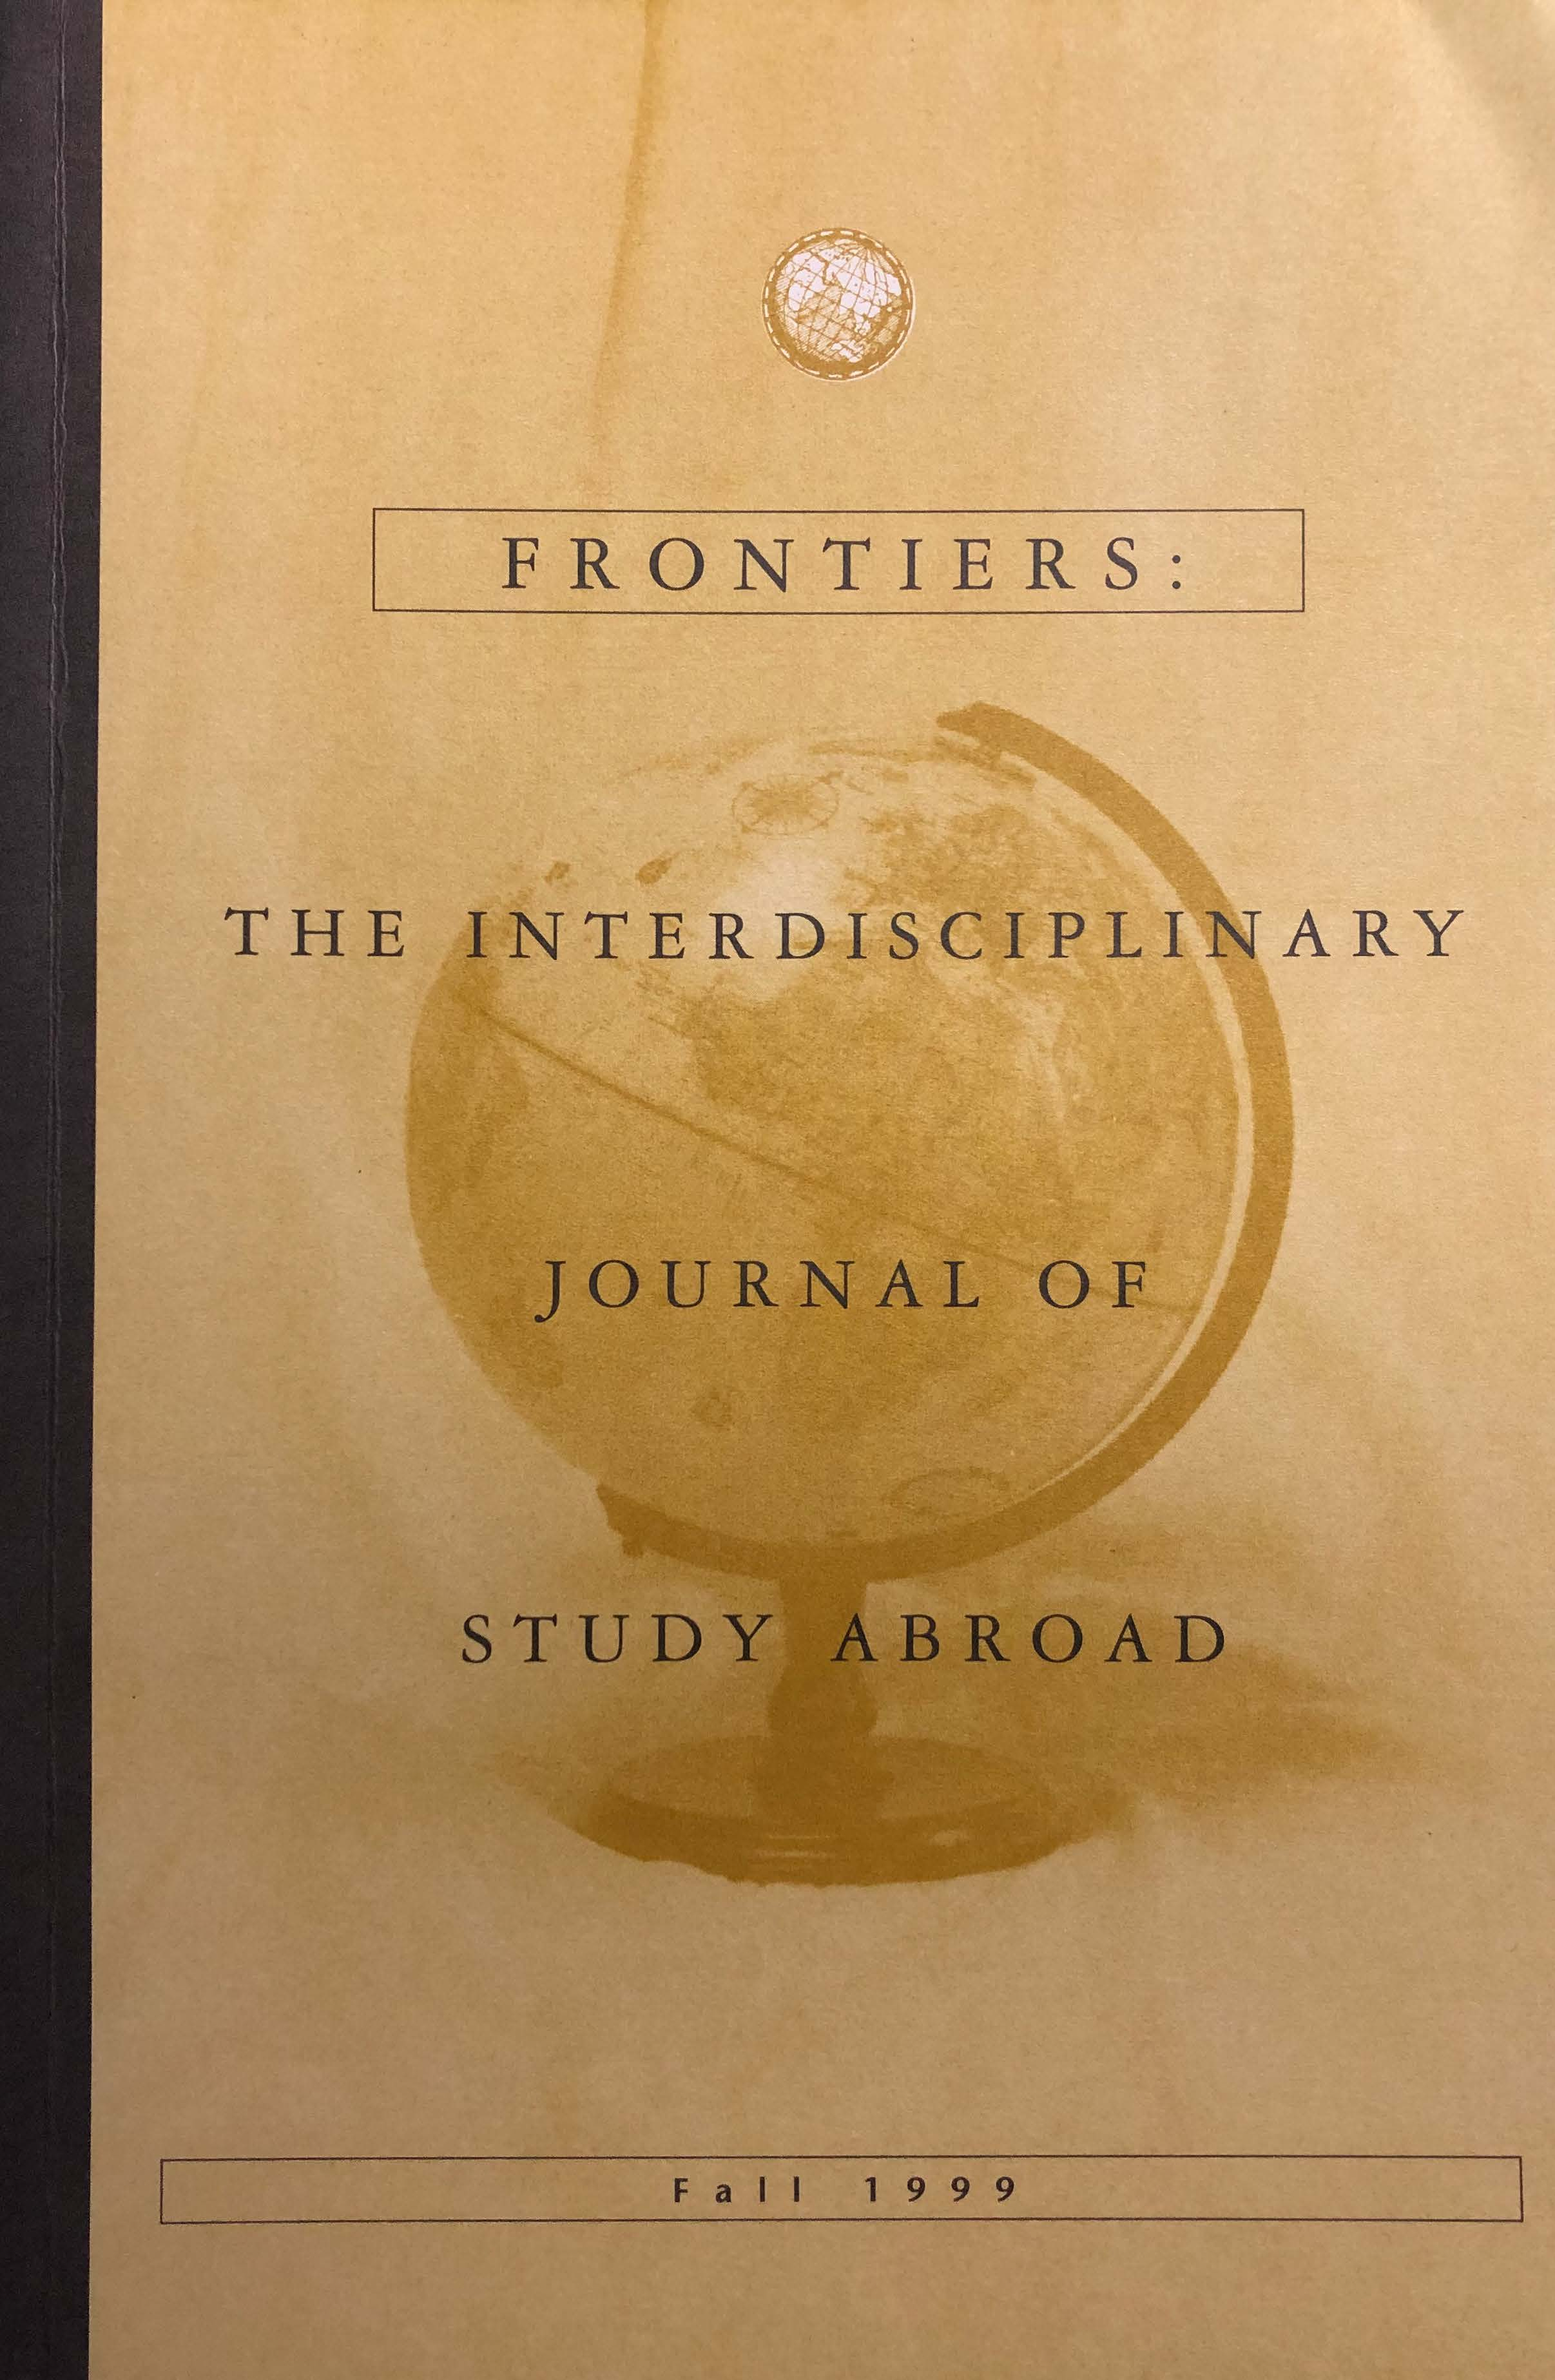 cover image of Fall 1998 Frontiers: The Interdisciplinary Journal of Study Abroad, yellow